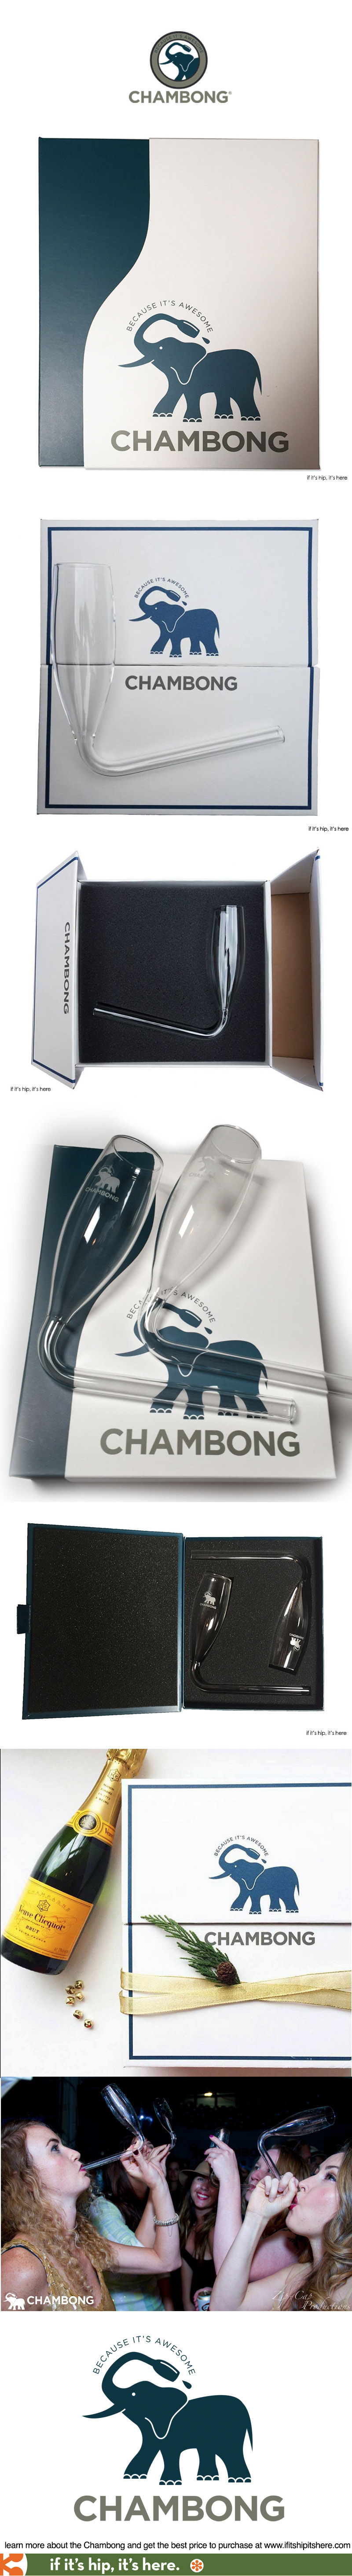 Branding, packaging and logo design for The Chambong, an upscale beer bong for bubbly.